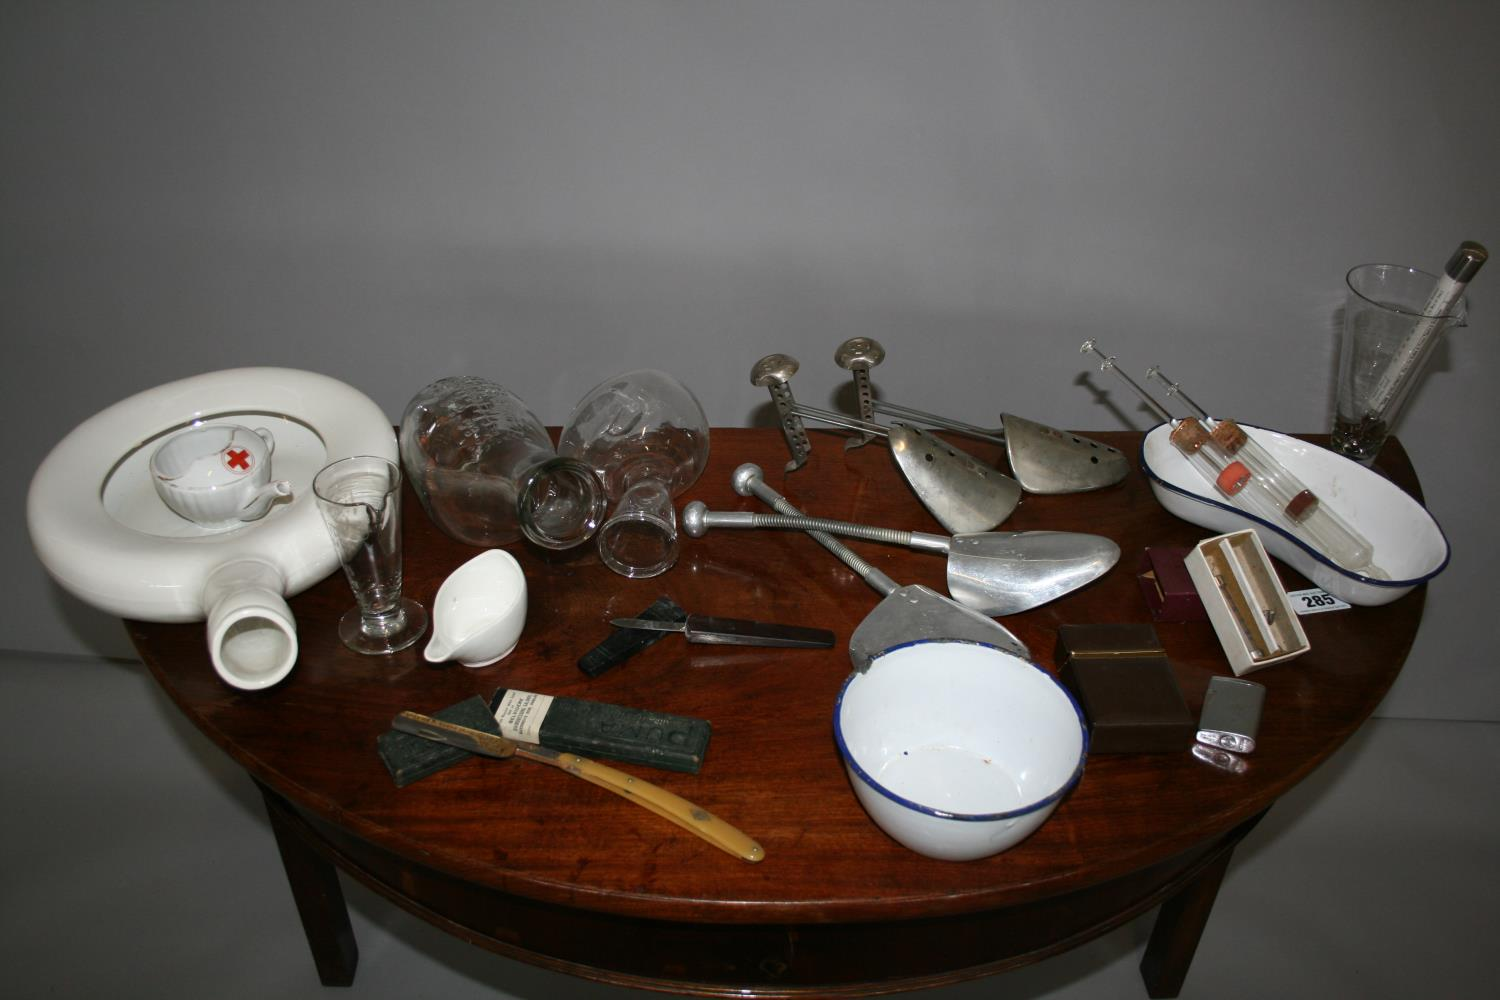 Very quirky collection of vintage medical paraphernalia including cut throat razor (Puma Gold).